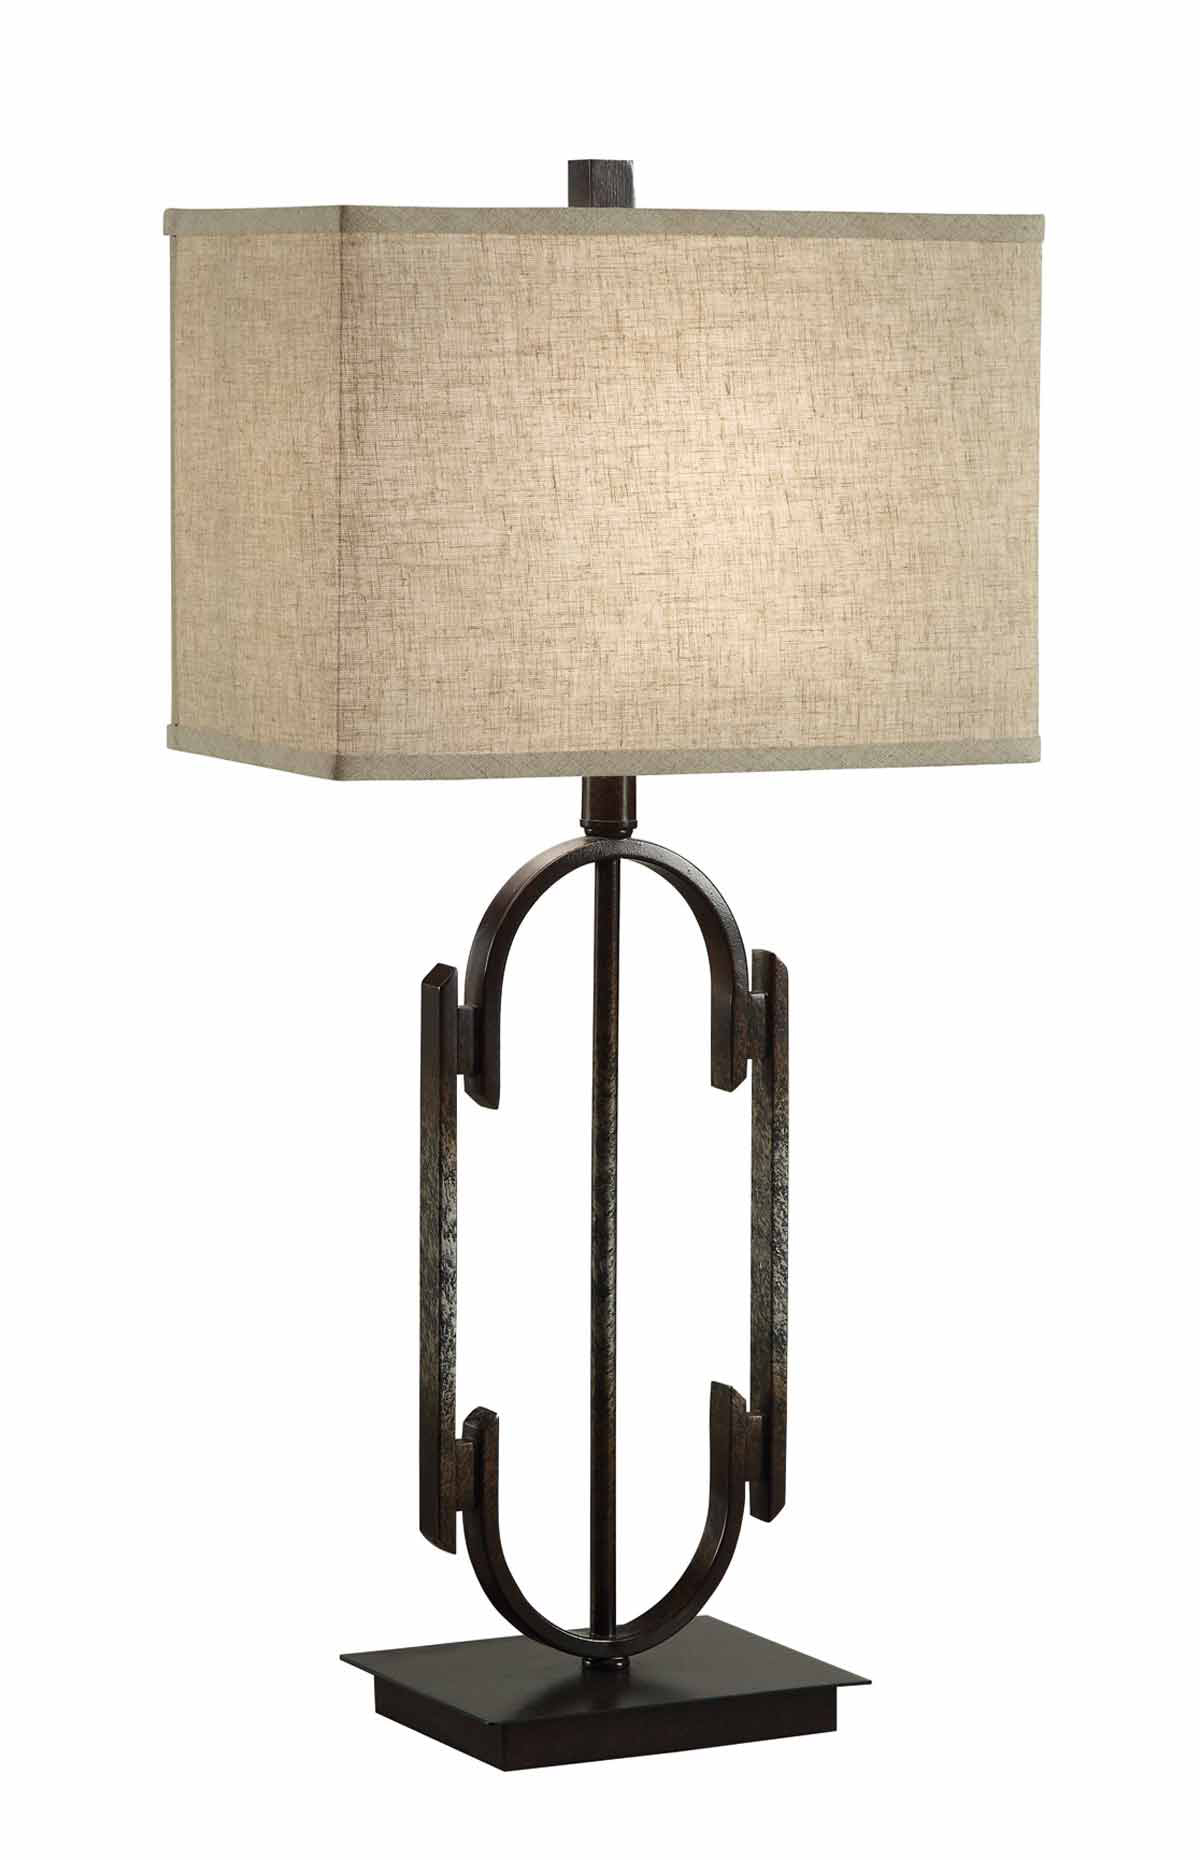 Coaster 901534 Table Lamp - Dark Bronze/Antique Silver